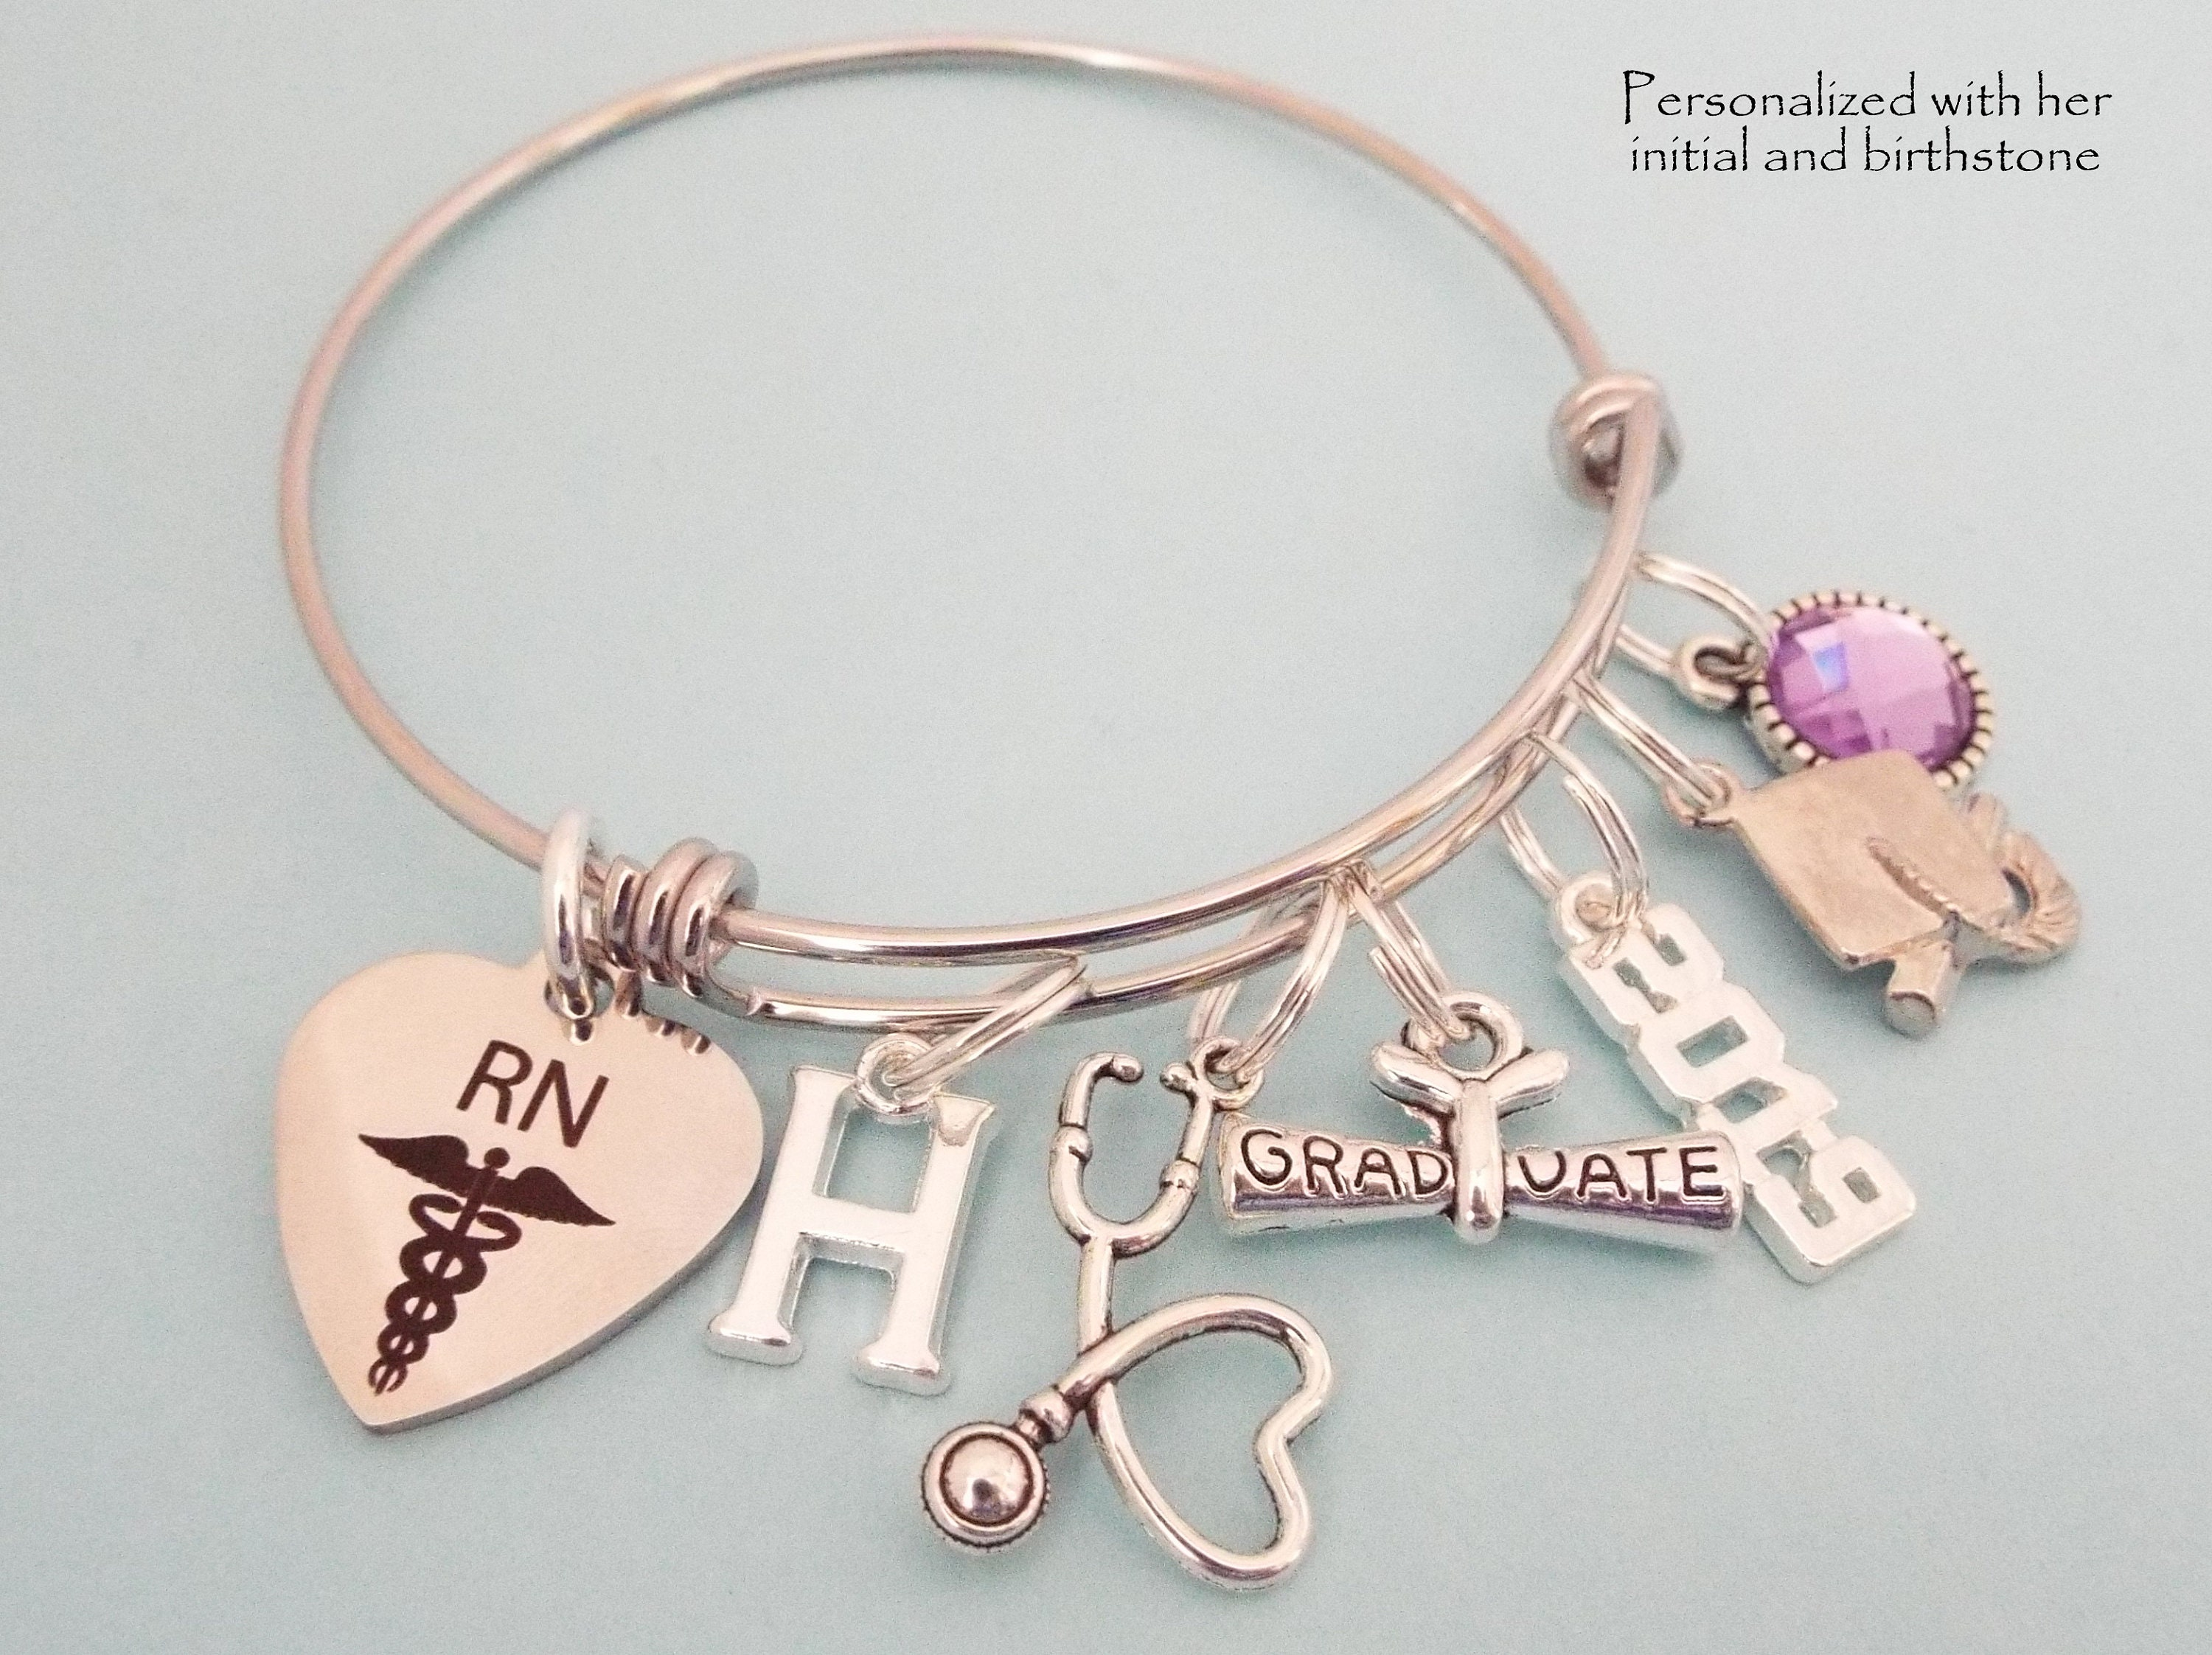 Nurse Graduation Personalized Gift Rn Graduate Charm Bracelet Nursing School Woman S Graduation Gift Gift For Her Girl Graduating